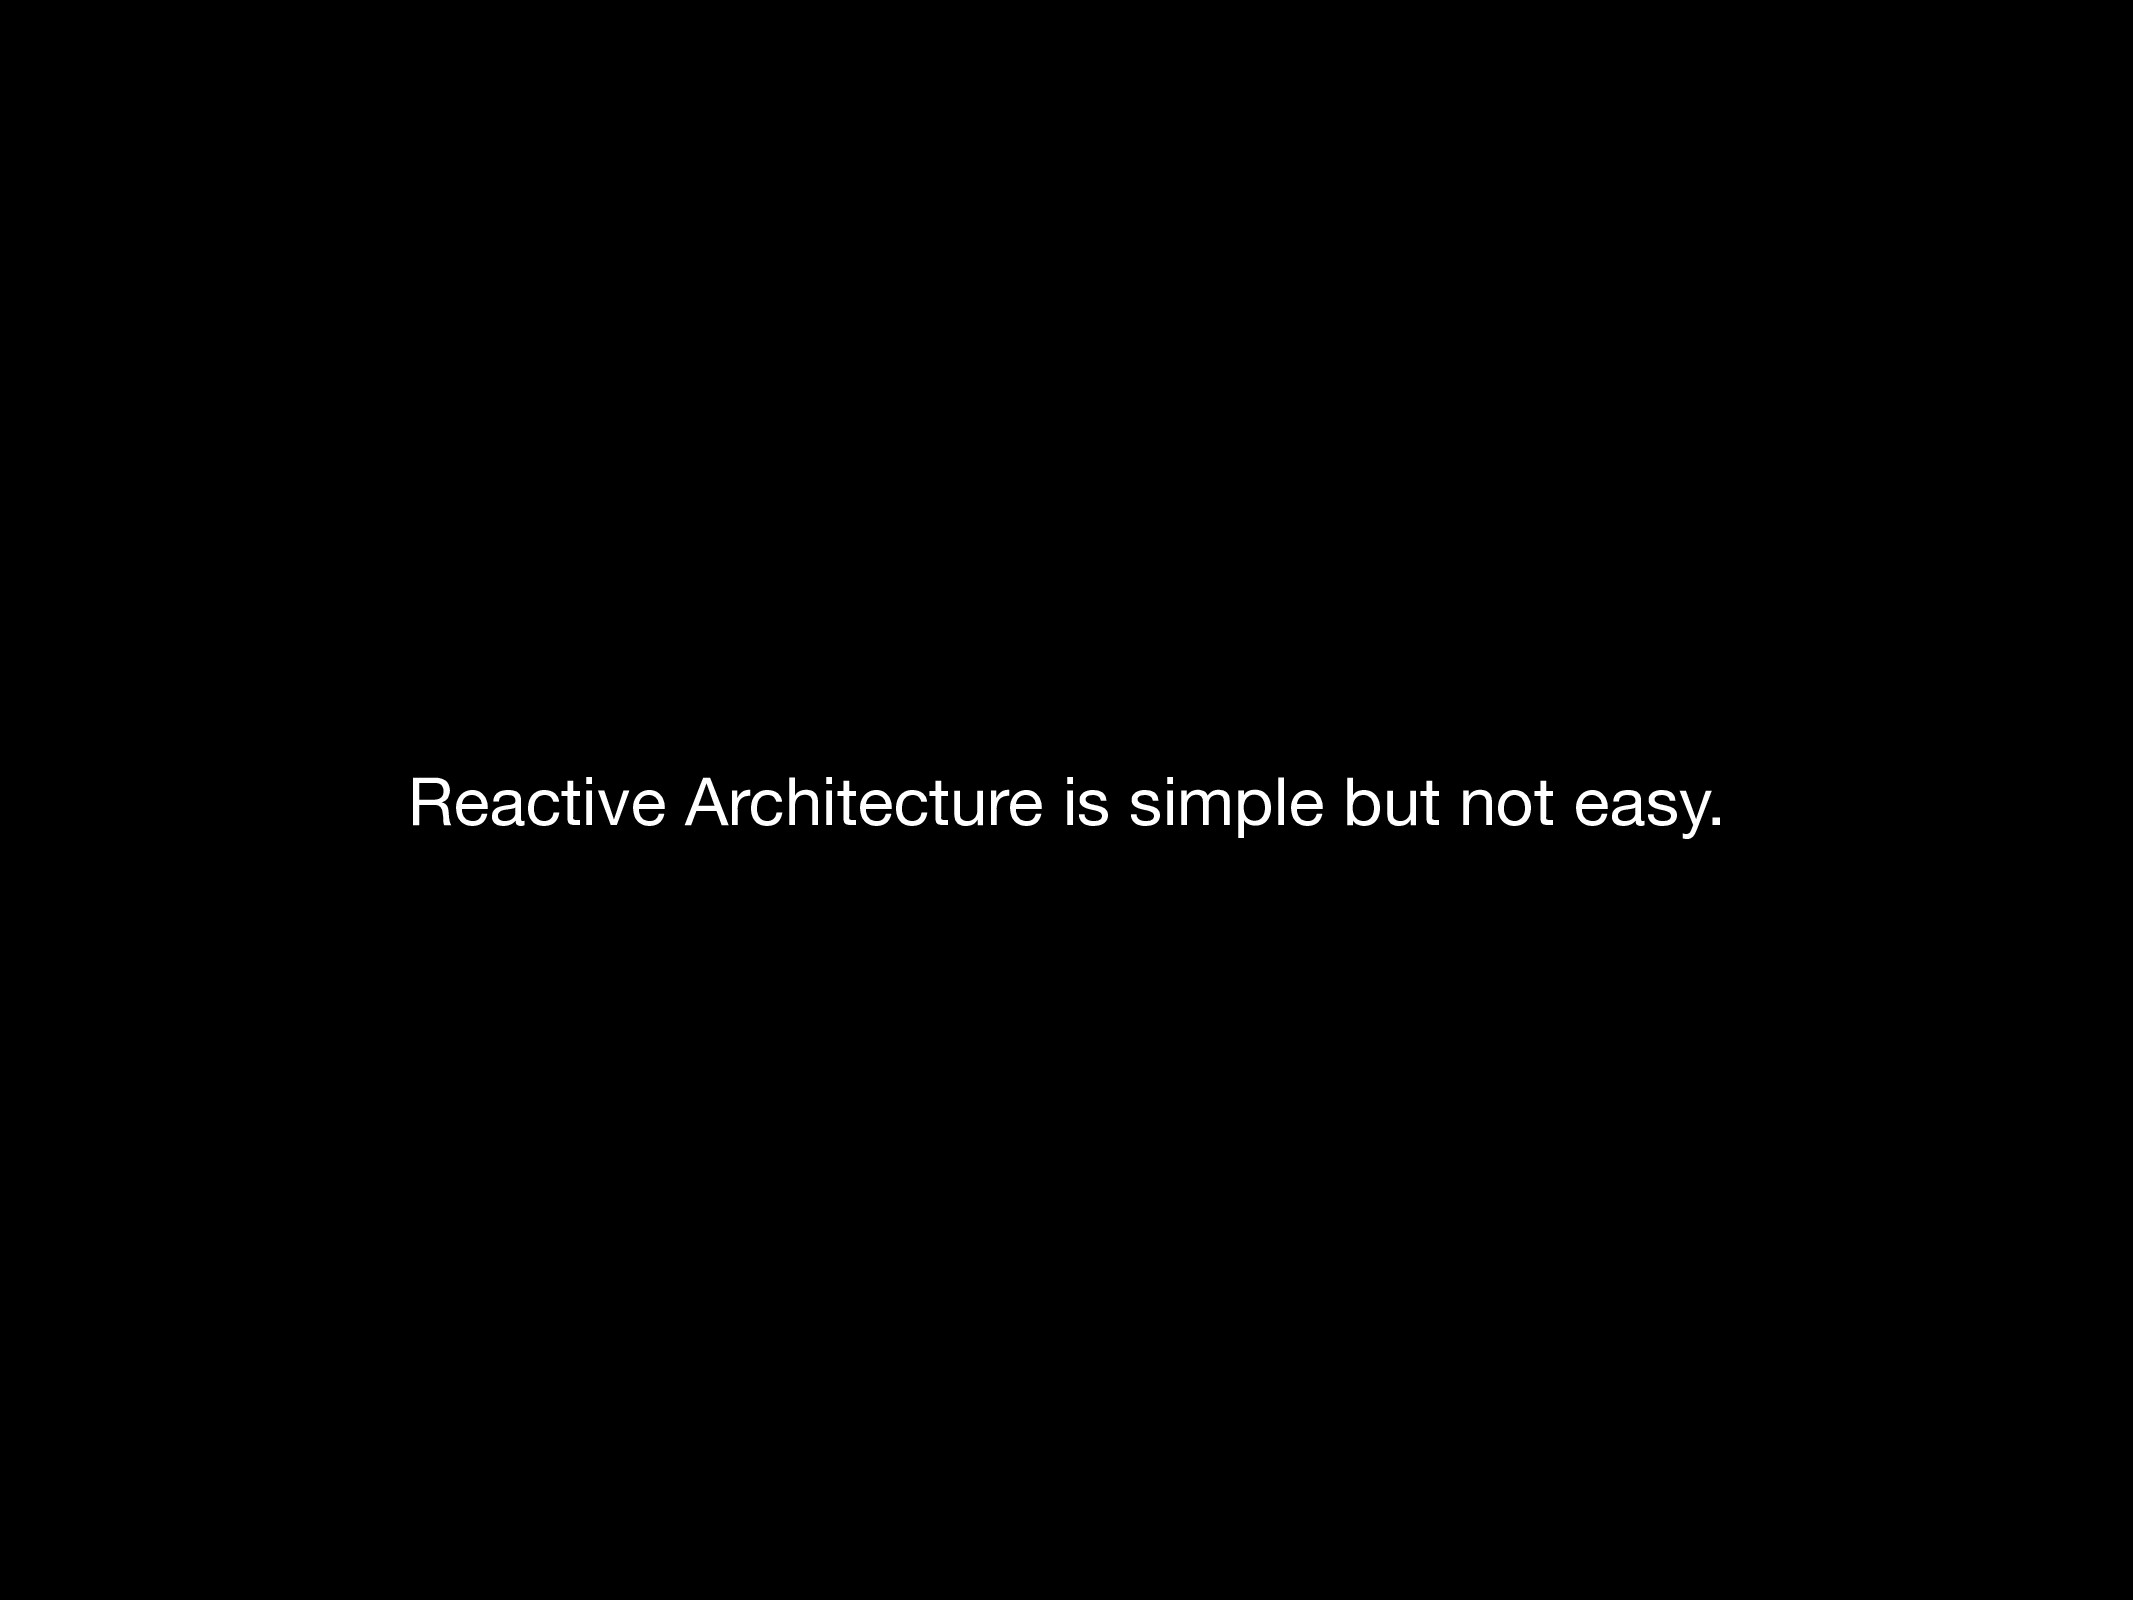 Reactive Architecture is simple but not easy.